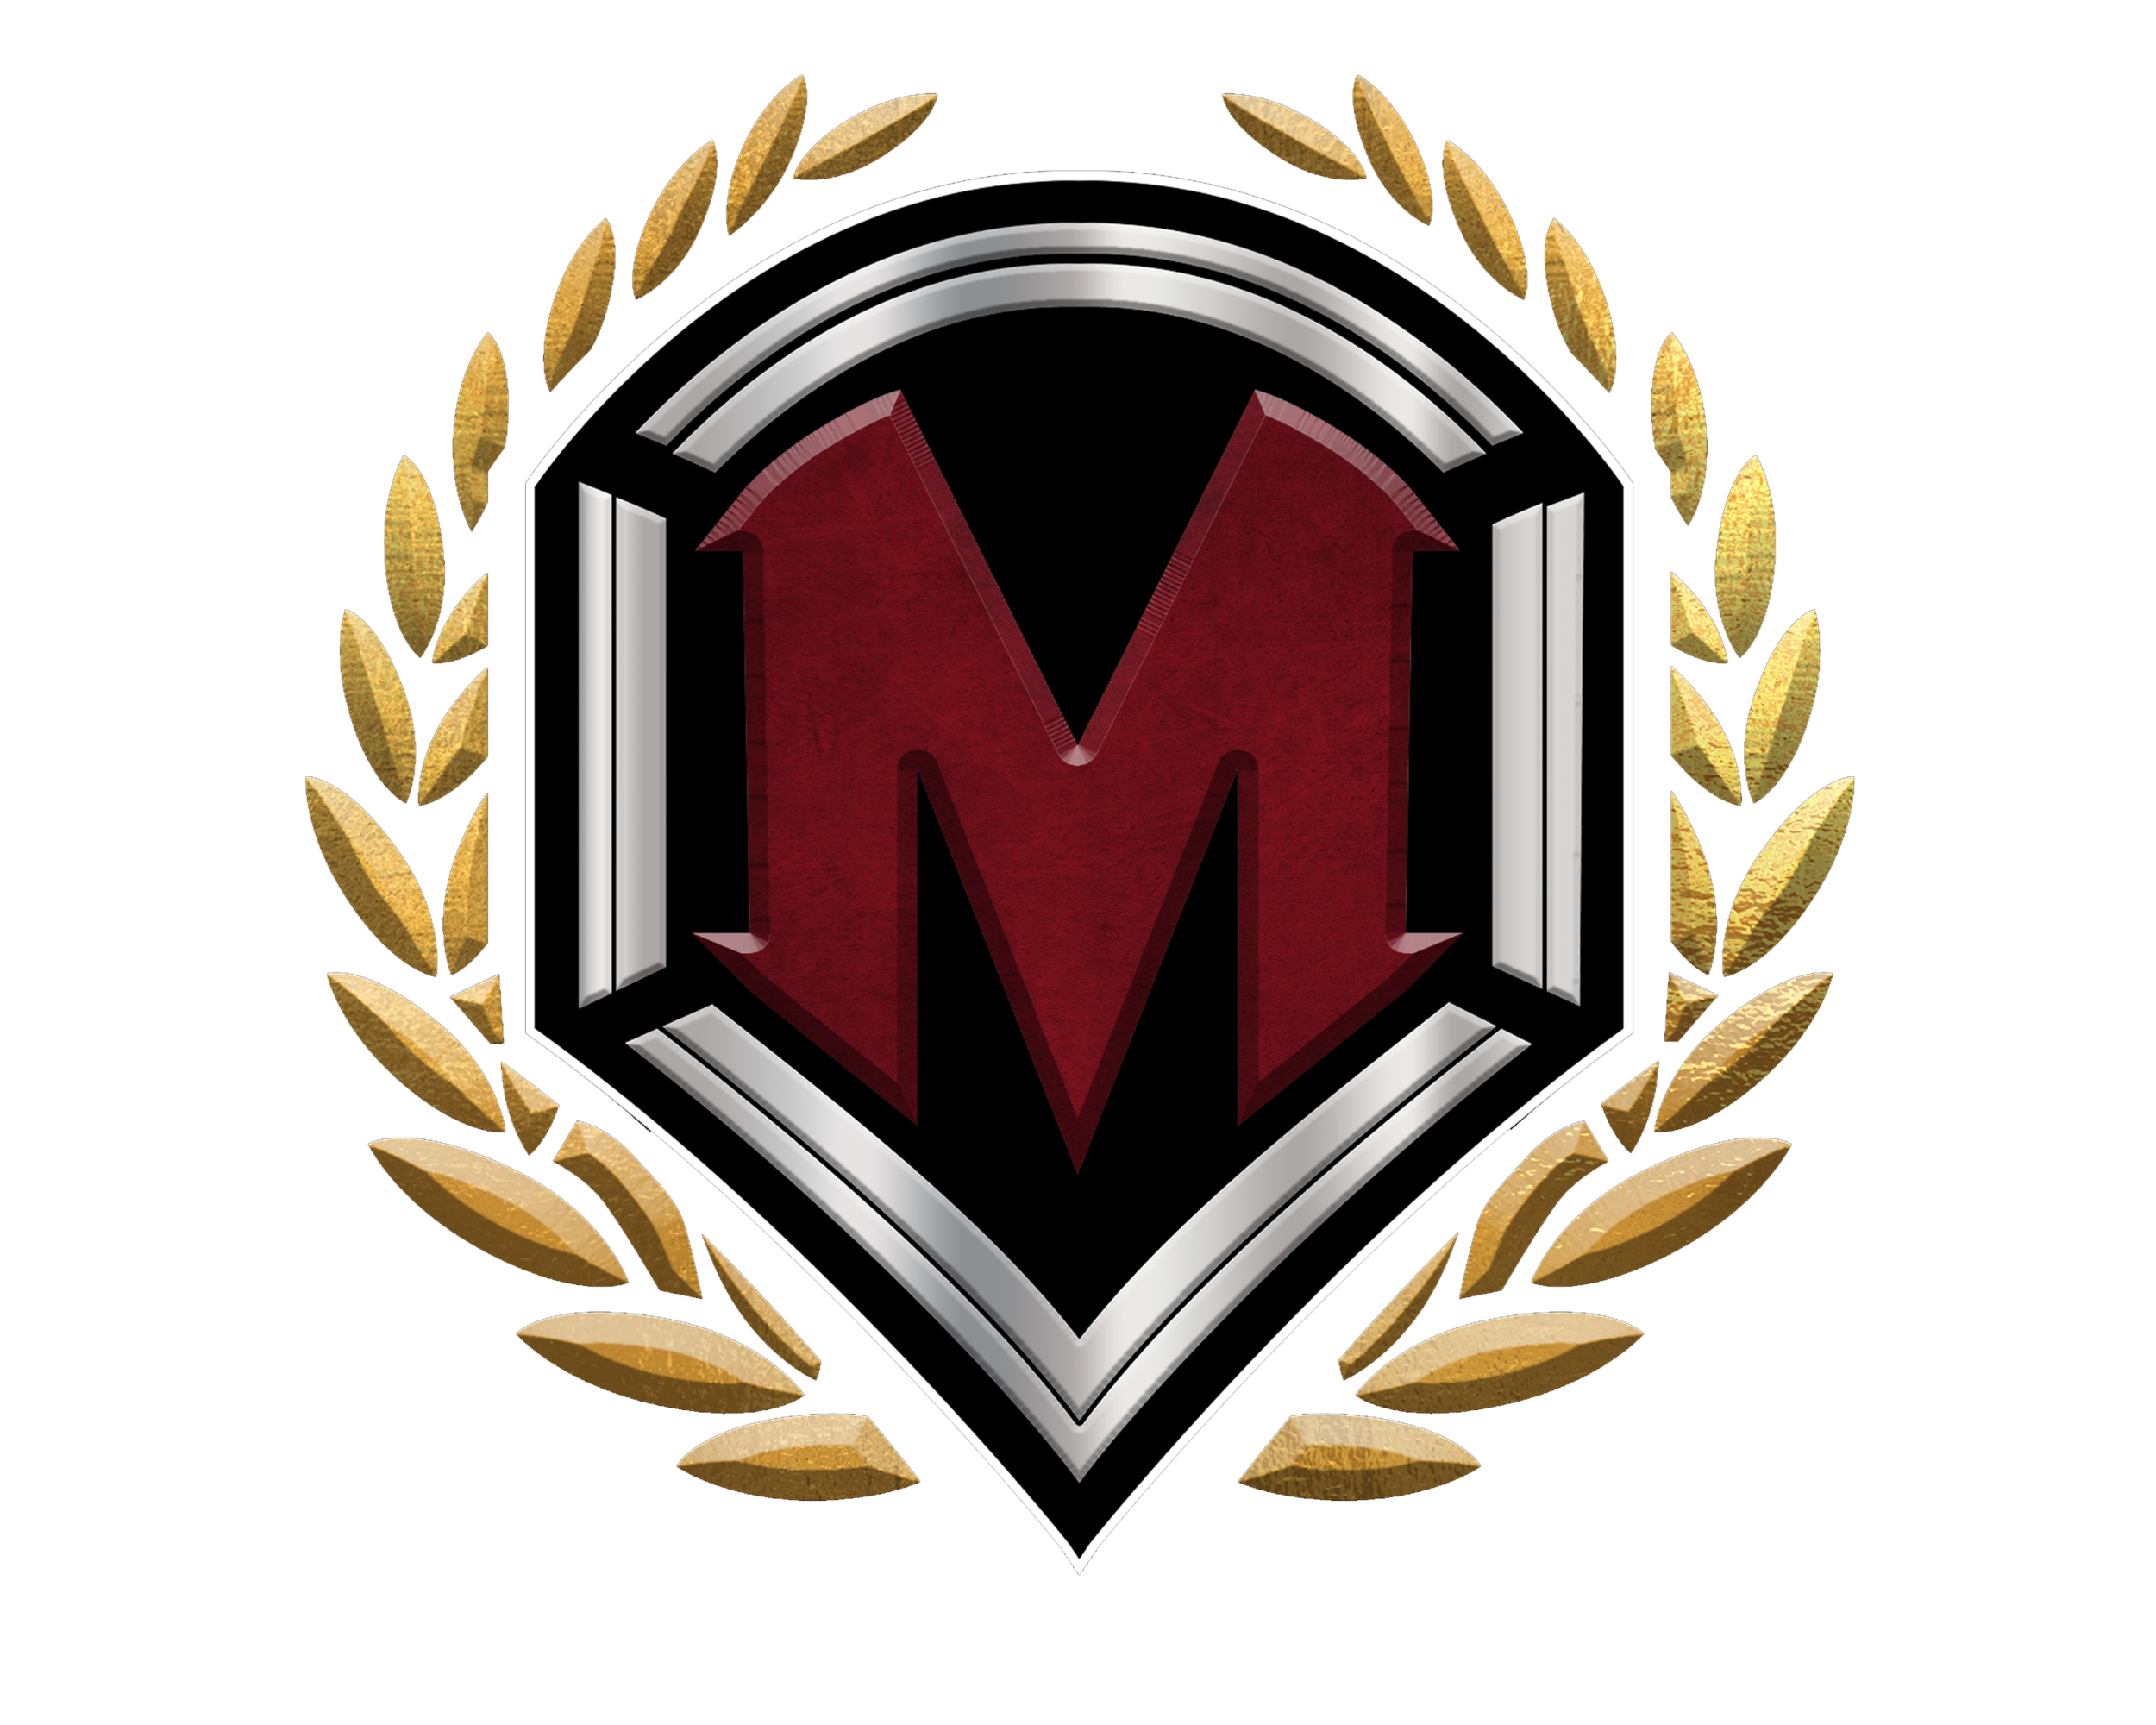 mpire_logo bkgd.png